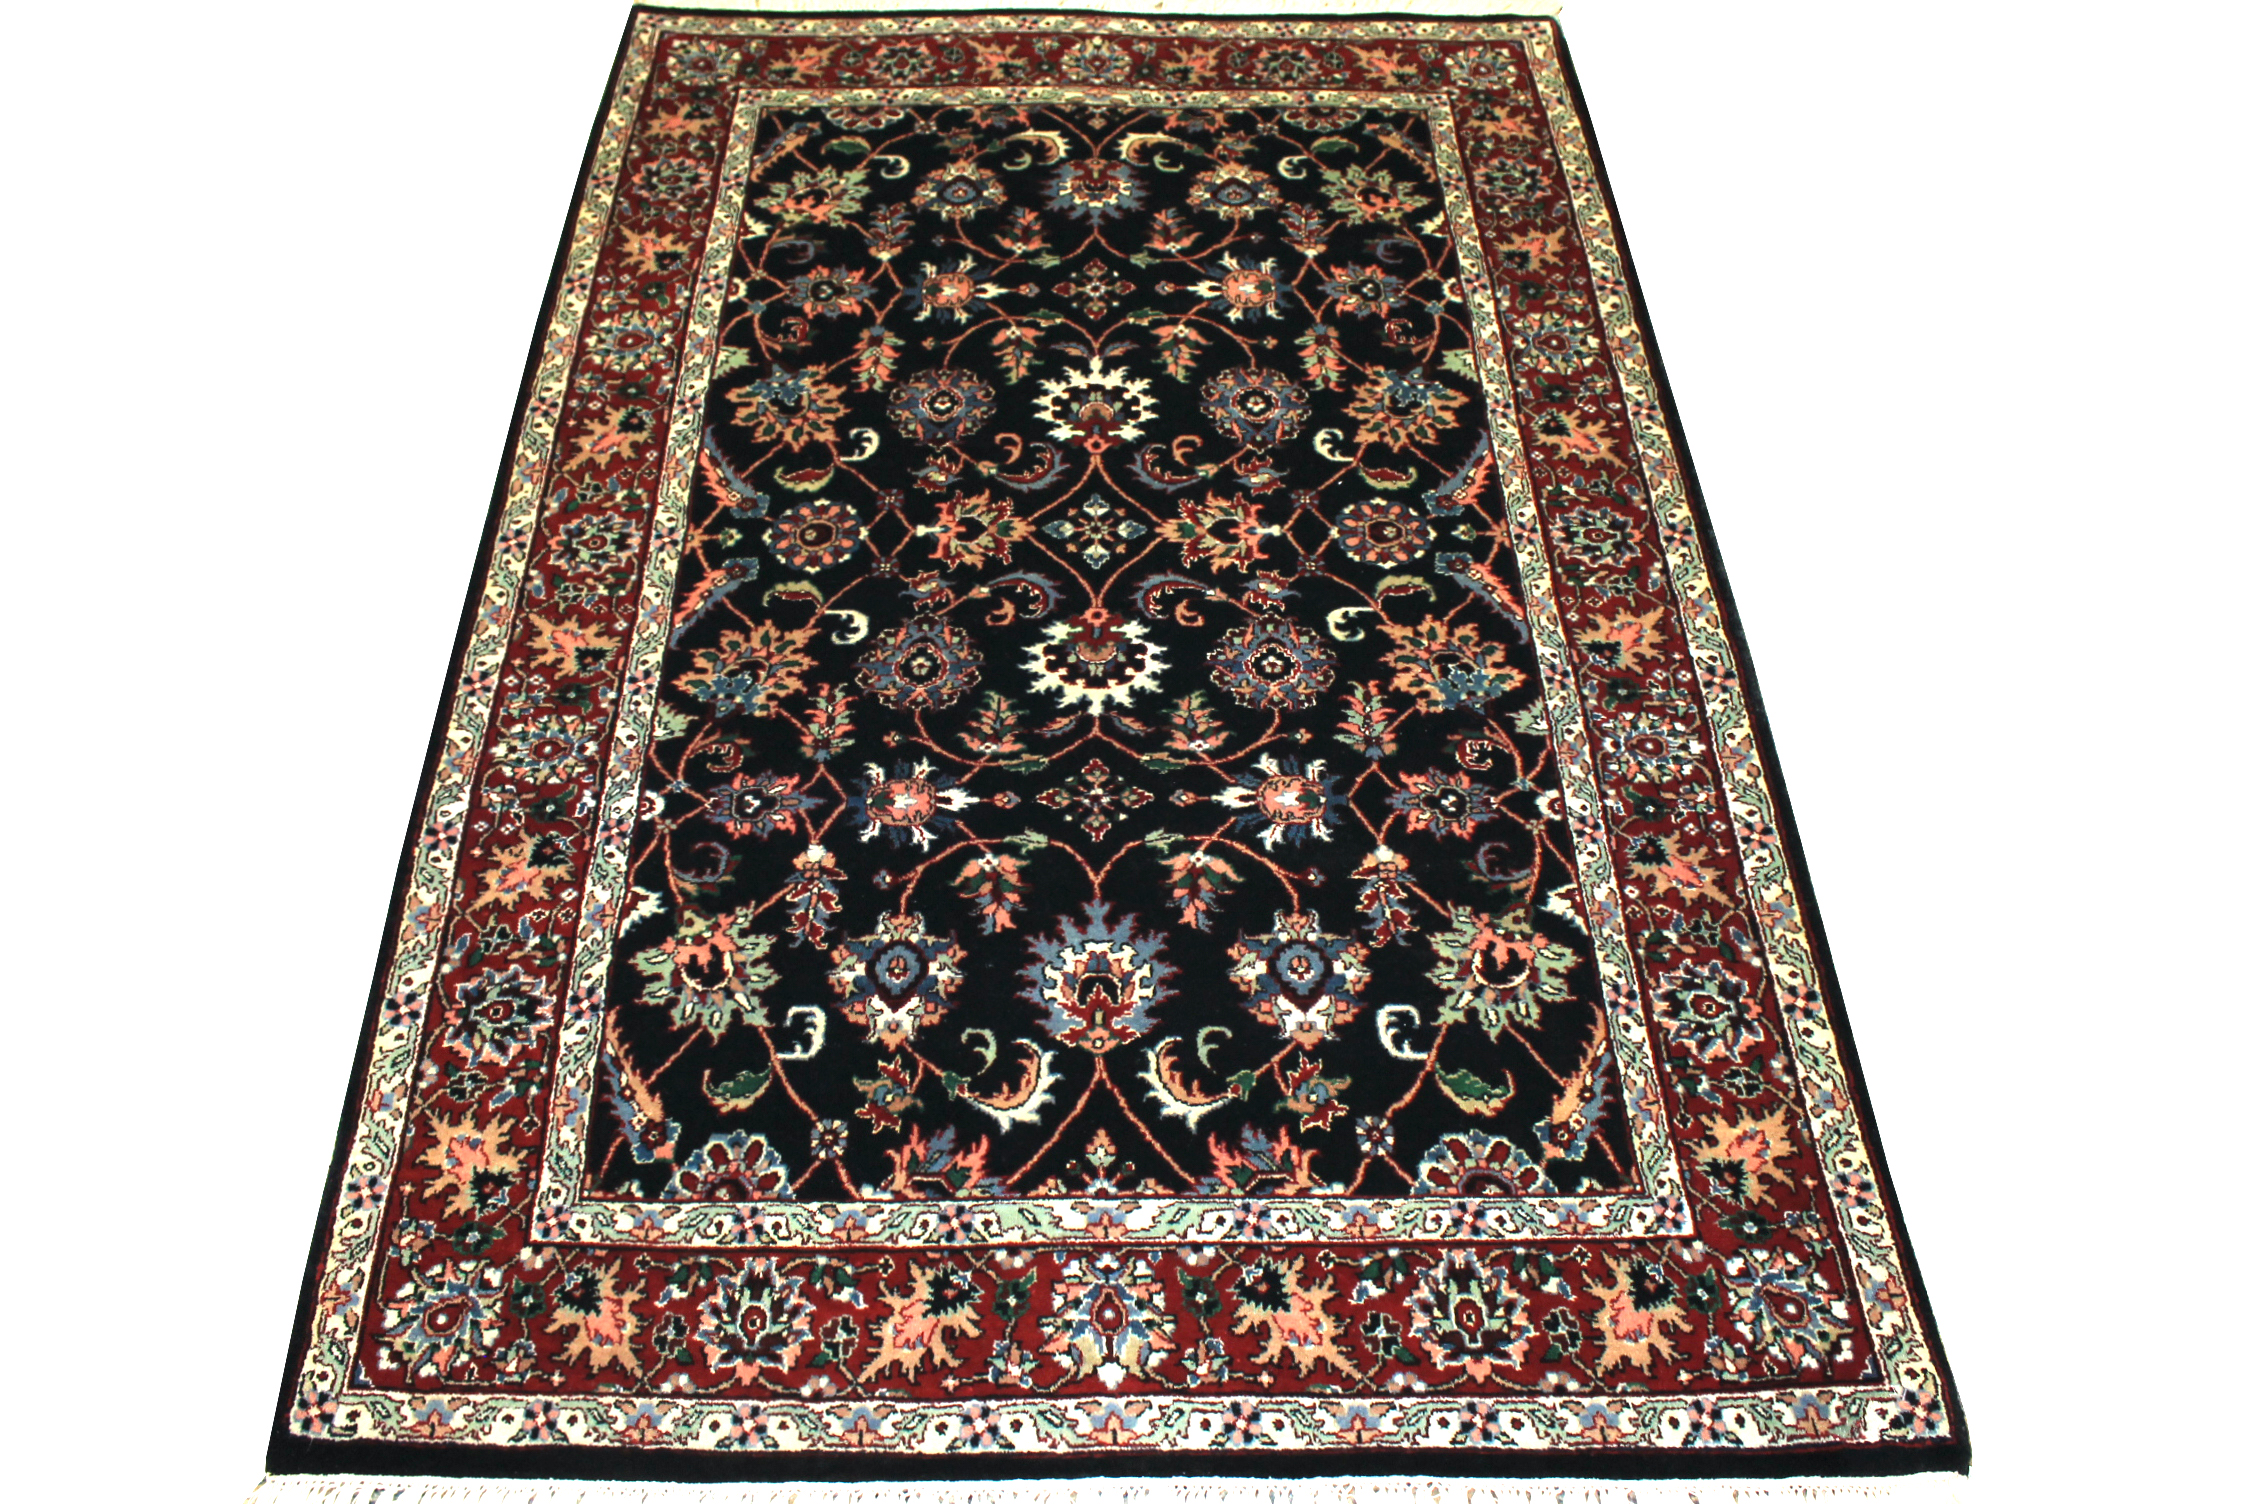 4x6 Traditional Hand Knotted Wool Area Rug - MR1477